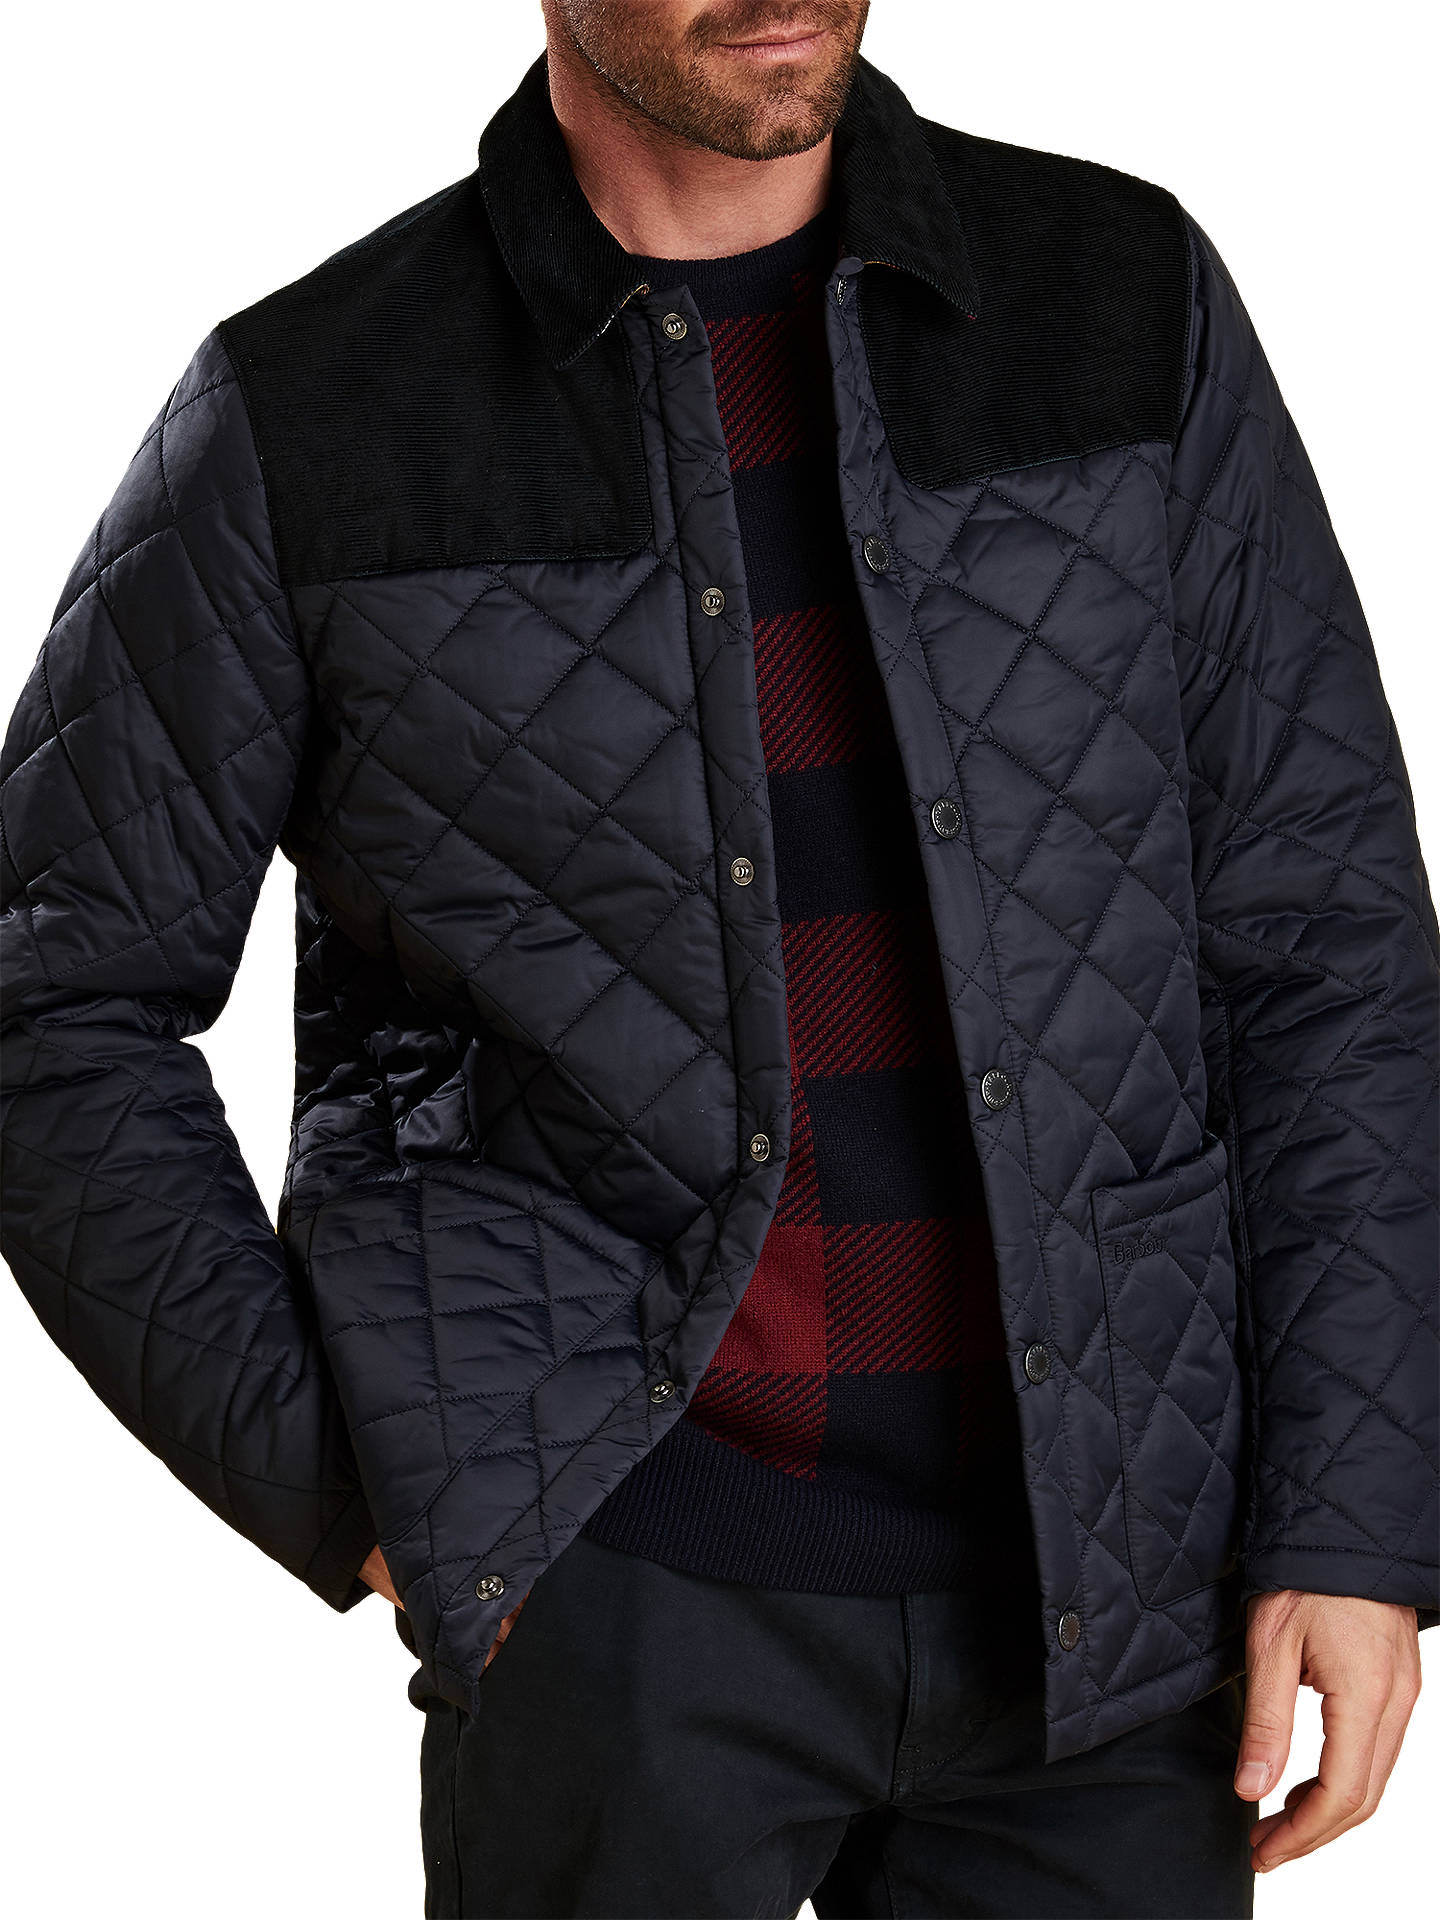 BuyBarbour Gillock Quilted Jacket, Blue, M Online at johnlewis.com